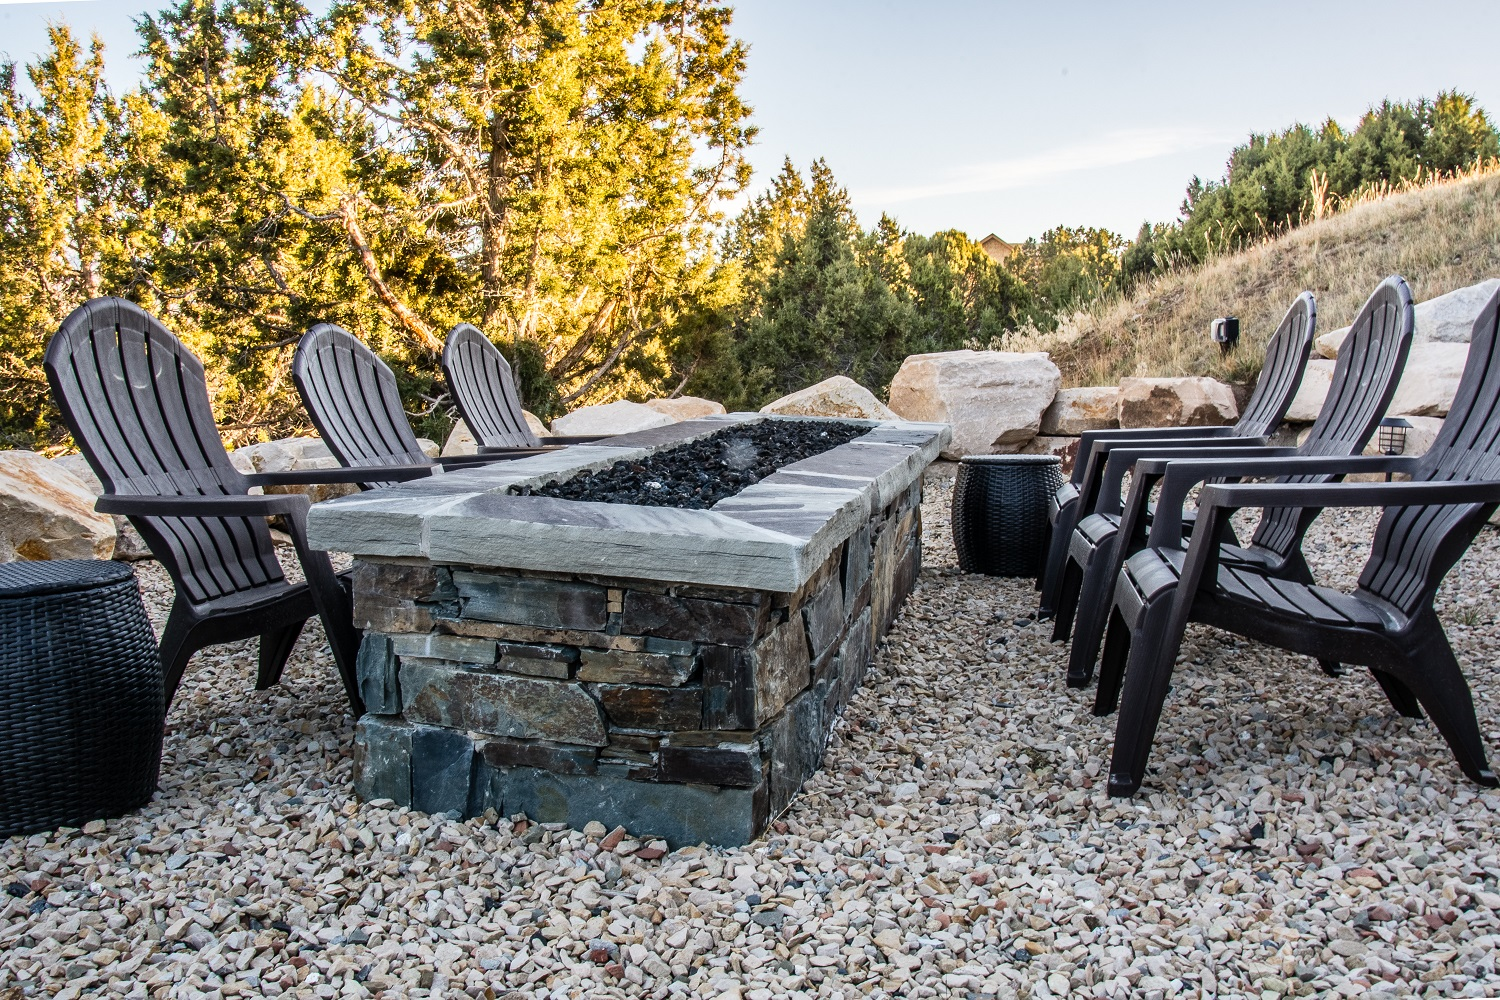 This natural stone fire pit brings uncompromising beauty you can't find with concrete pavers or artificial cultured stone. Notice how the natural boulders, crushed rock, and veneer blend in with the surrounding area.